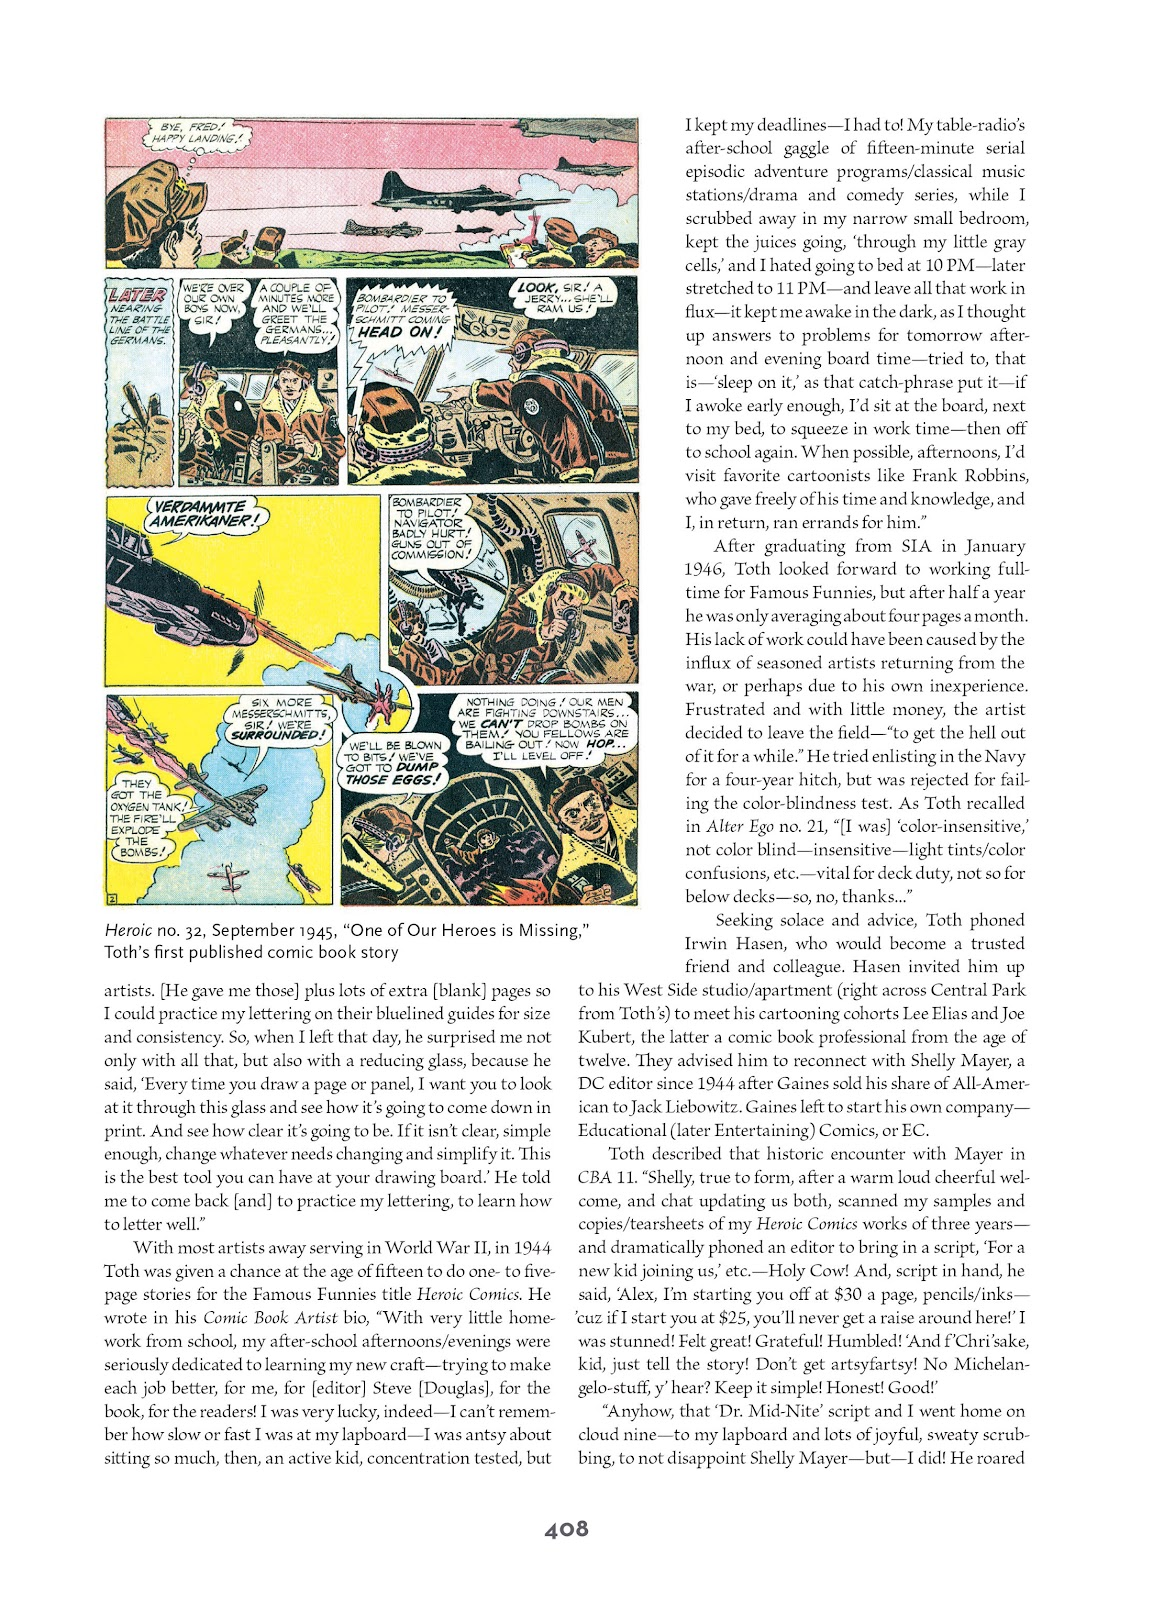 Read online Setting the Standard: Comics by Alex Toth 1952-1954 comic -  Issue # TPB (Part 4) - 109